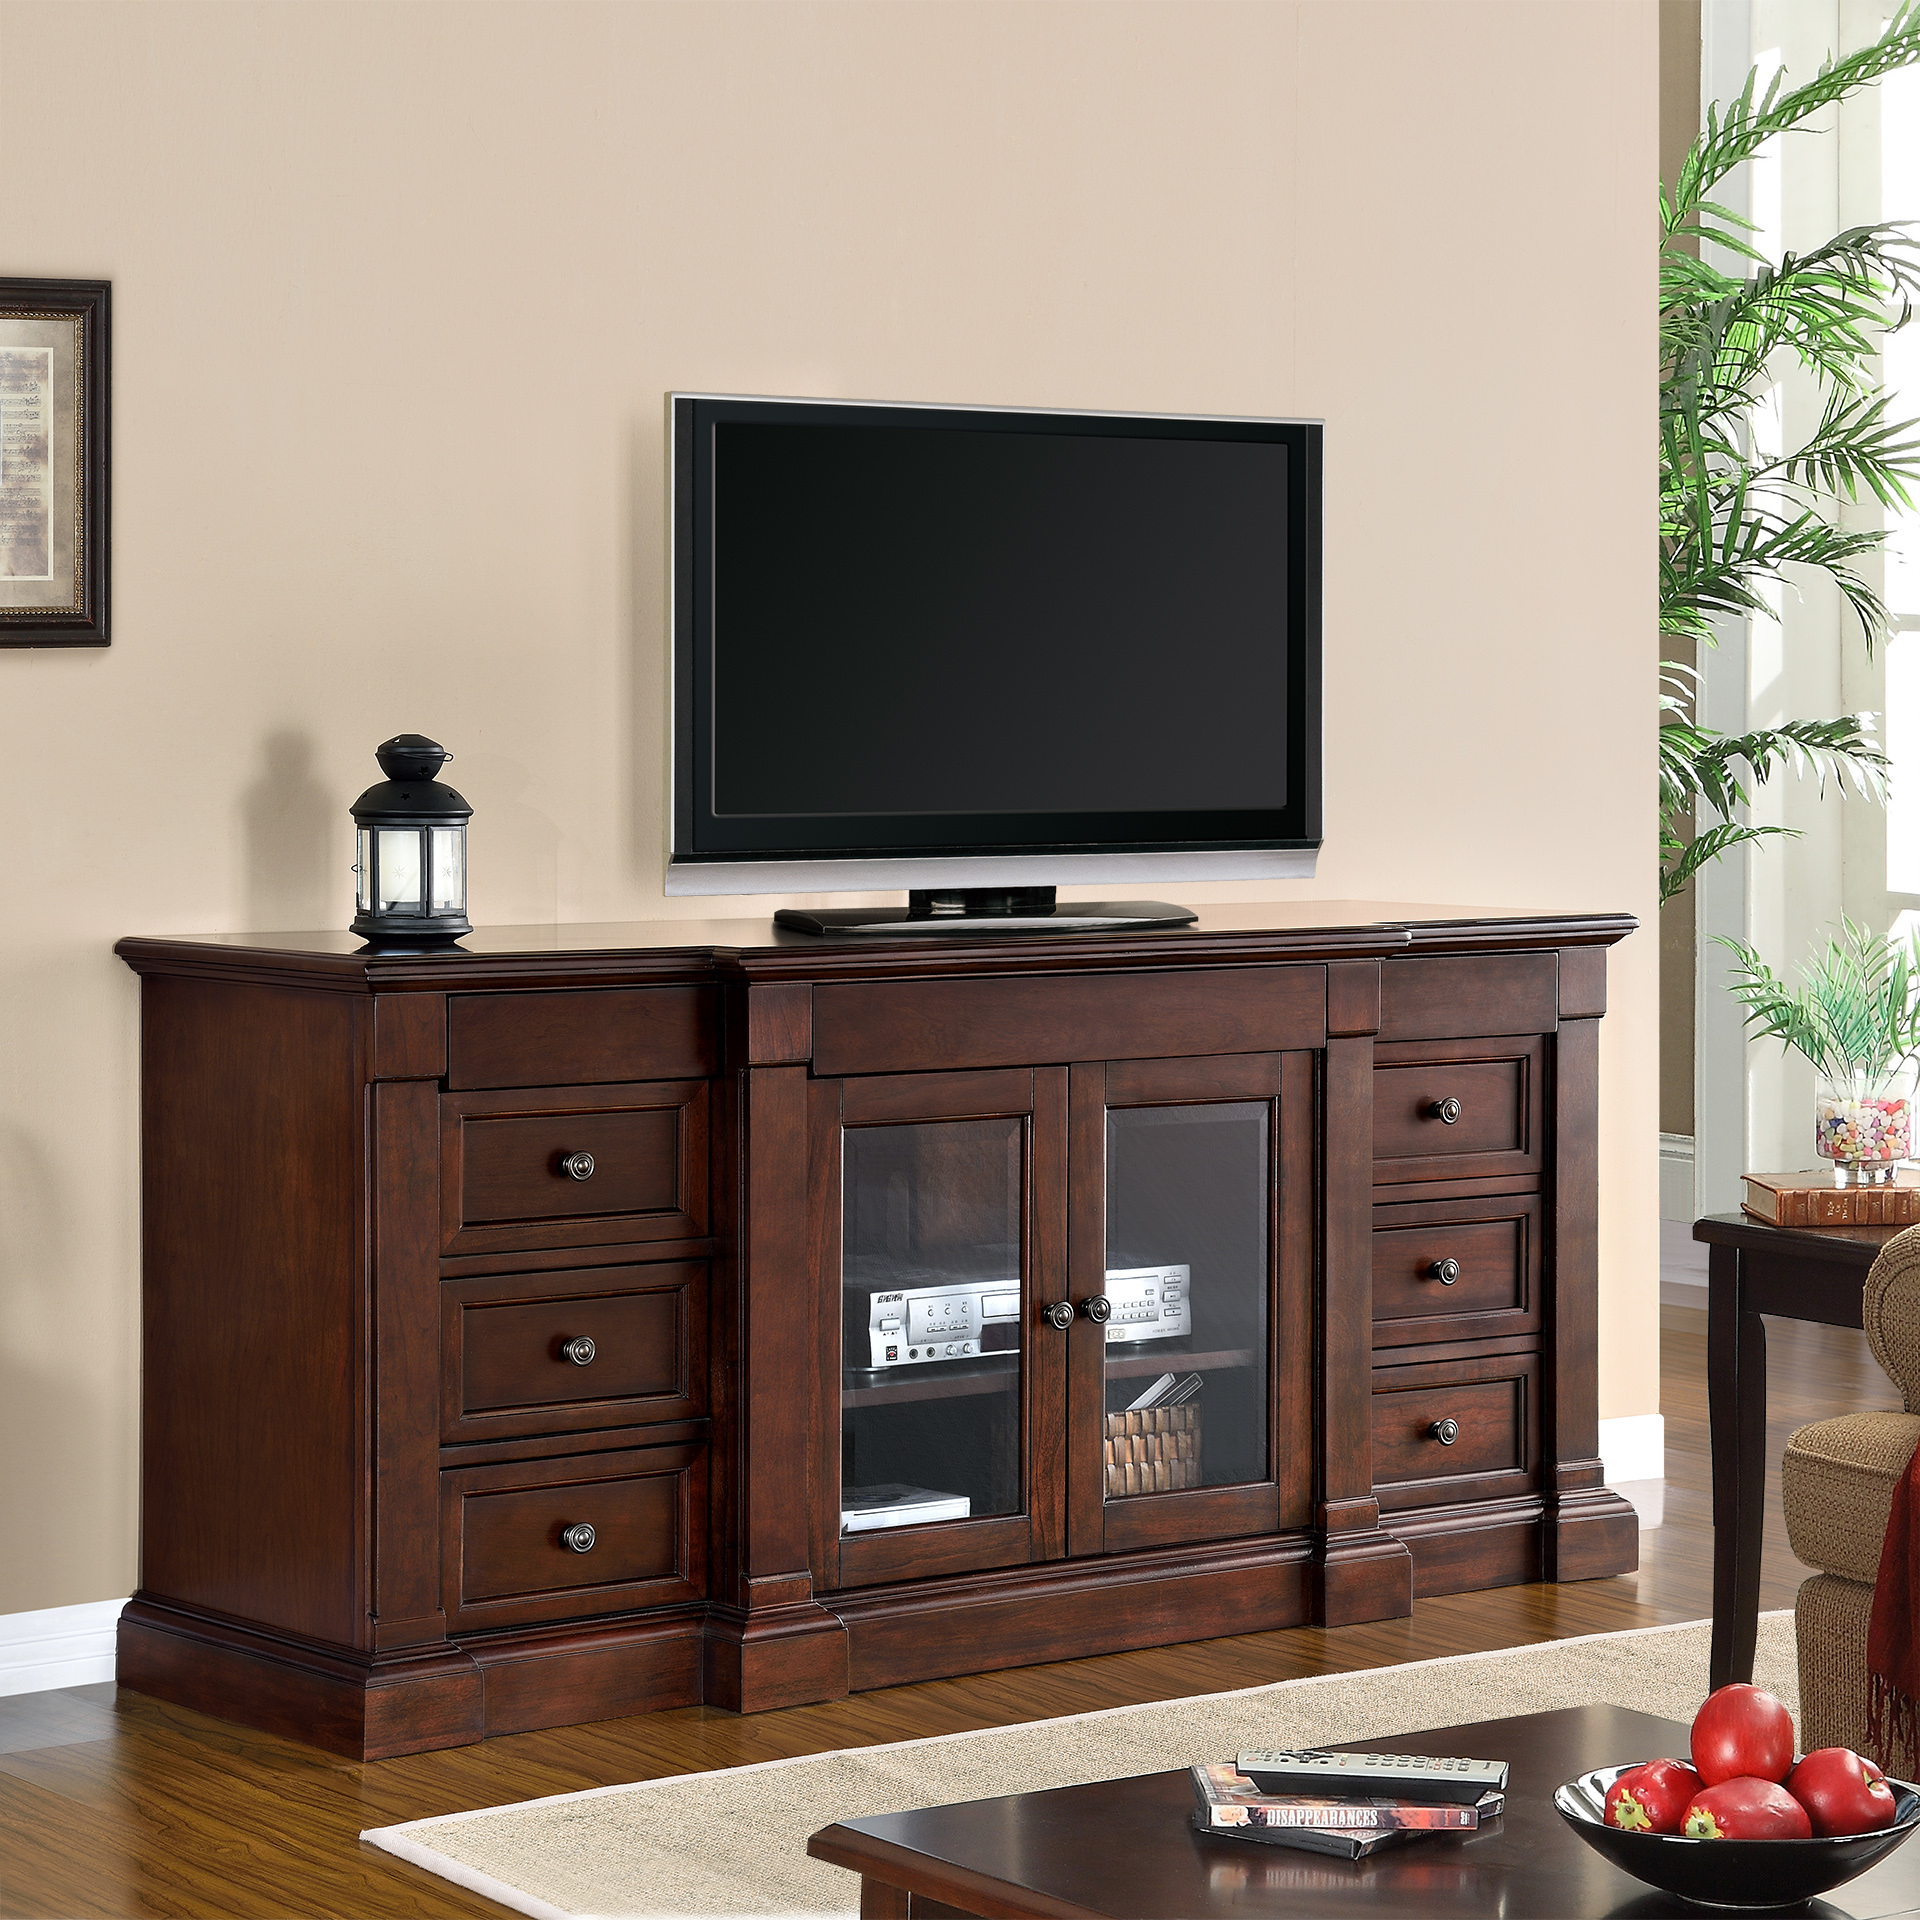 beaumont 65u201d media cabinet by mission hills